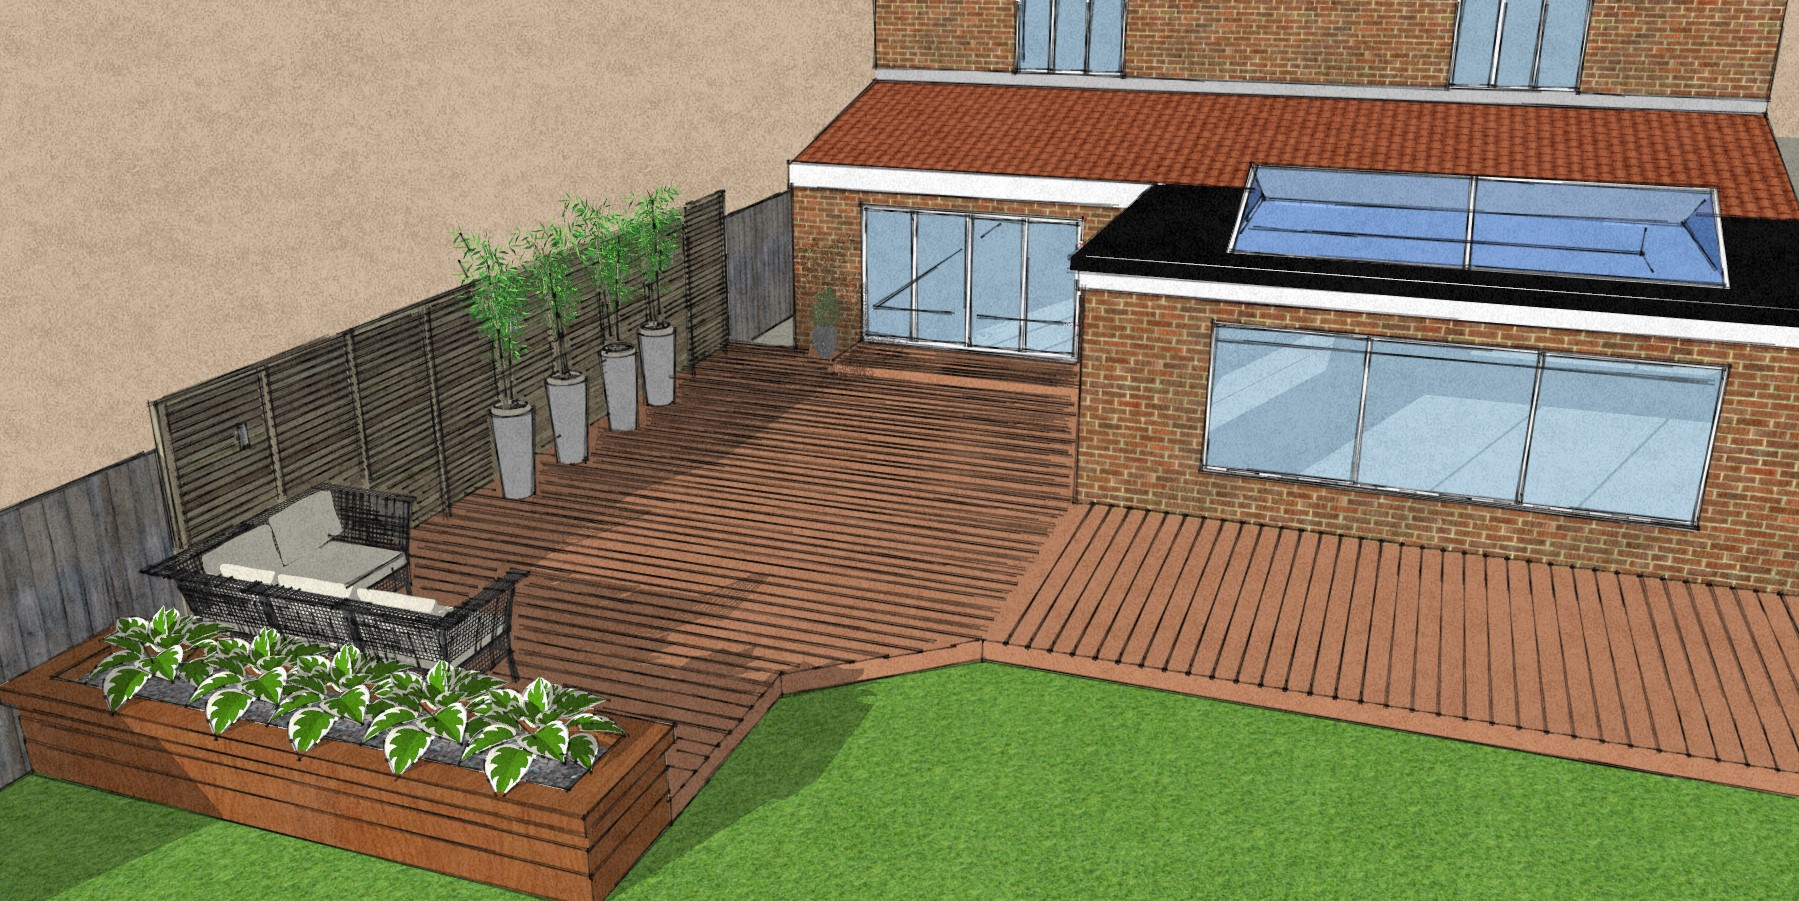 Design for composite deck